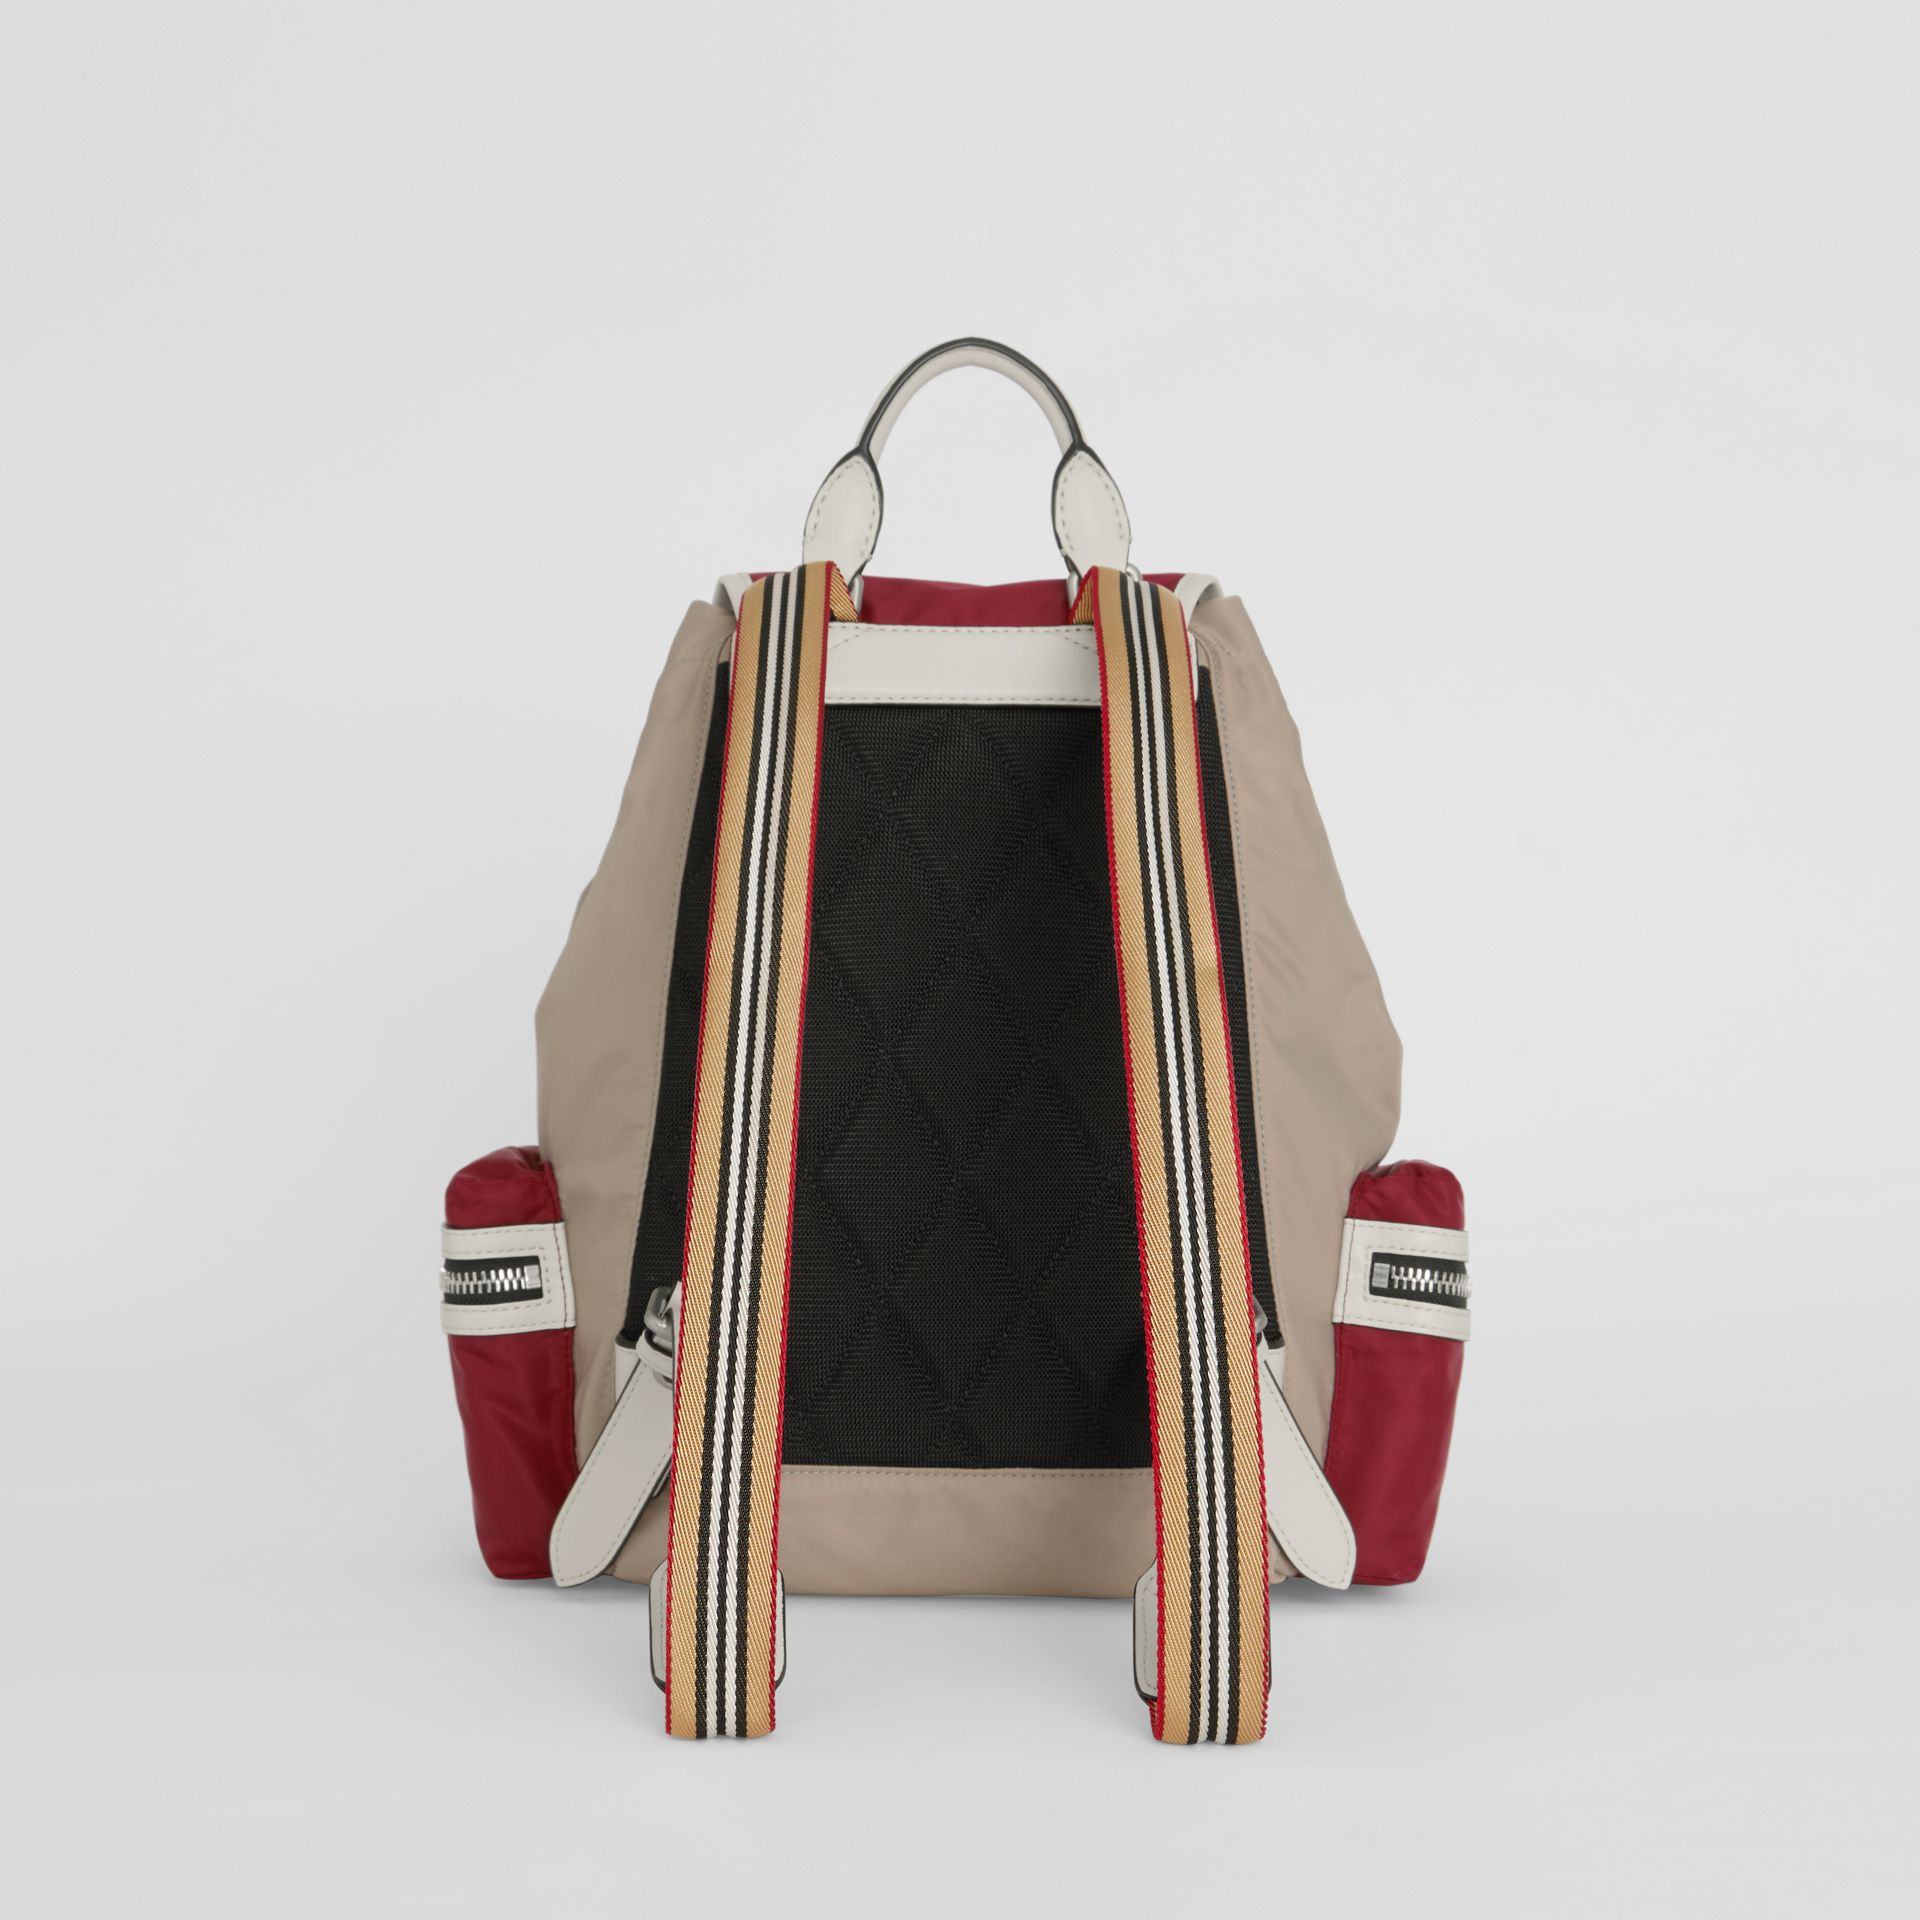 Sac The Rucksack moyen en nylon color-block et cuir (Carmin) - Femme | Burberry - photo de la galerie 7